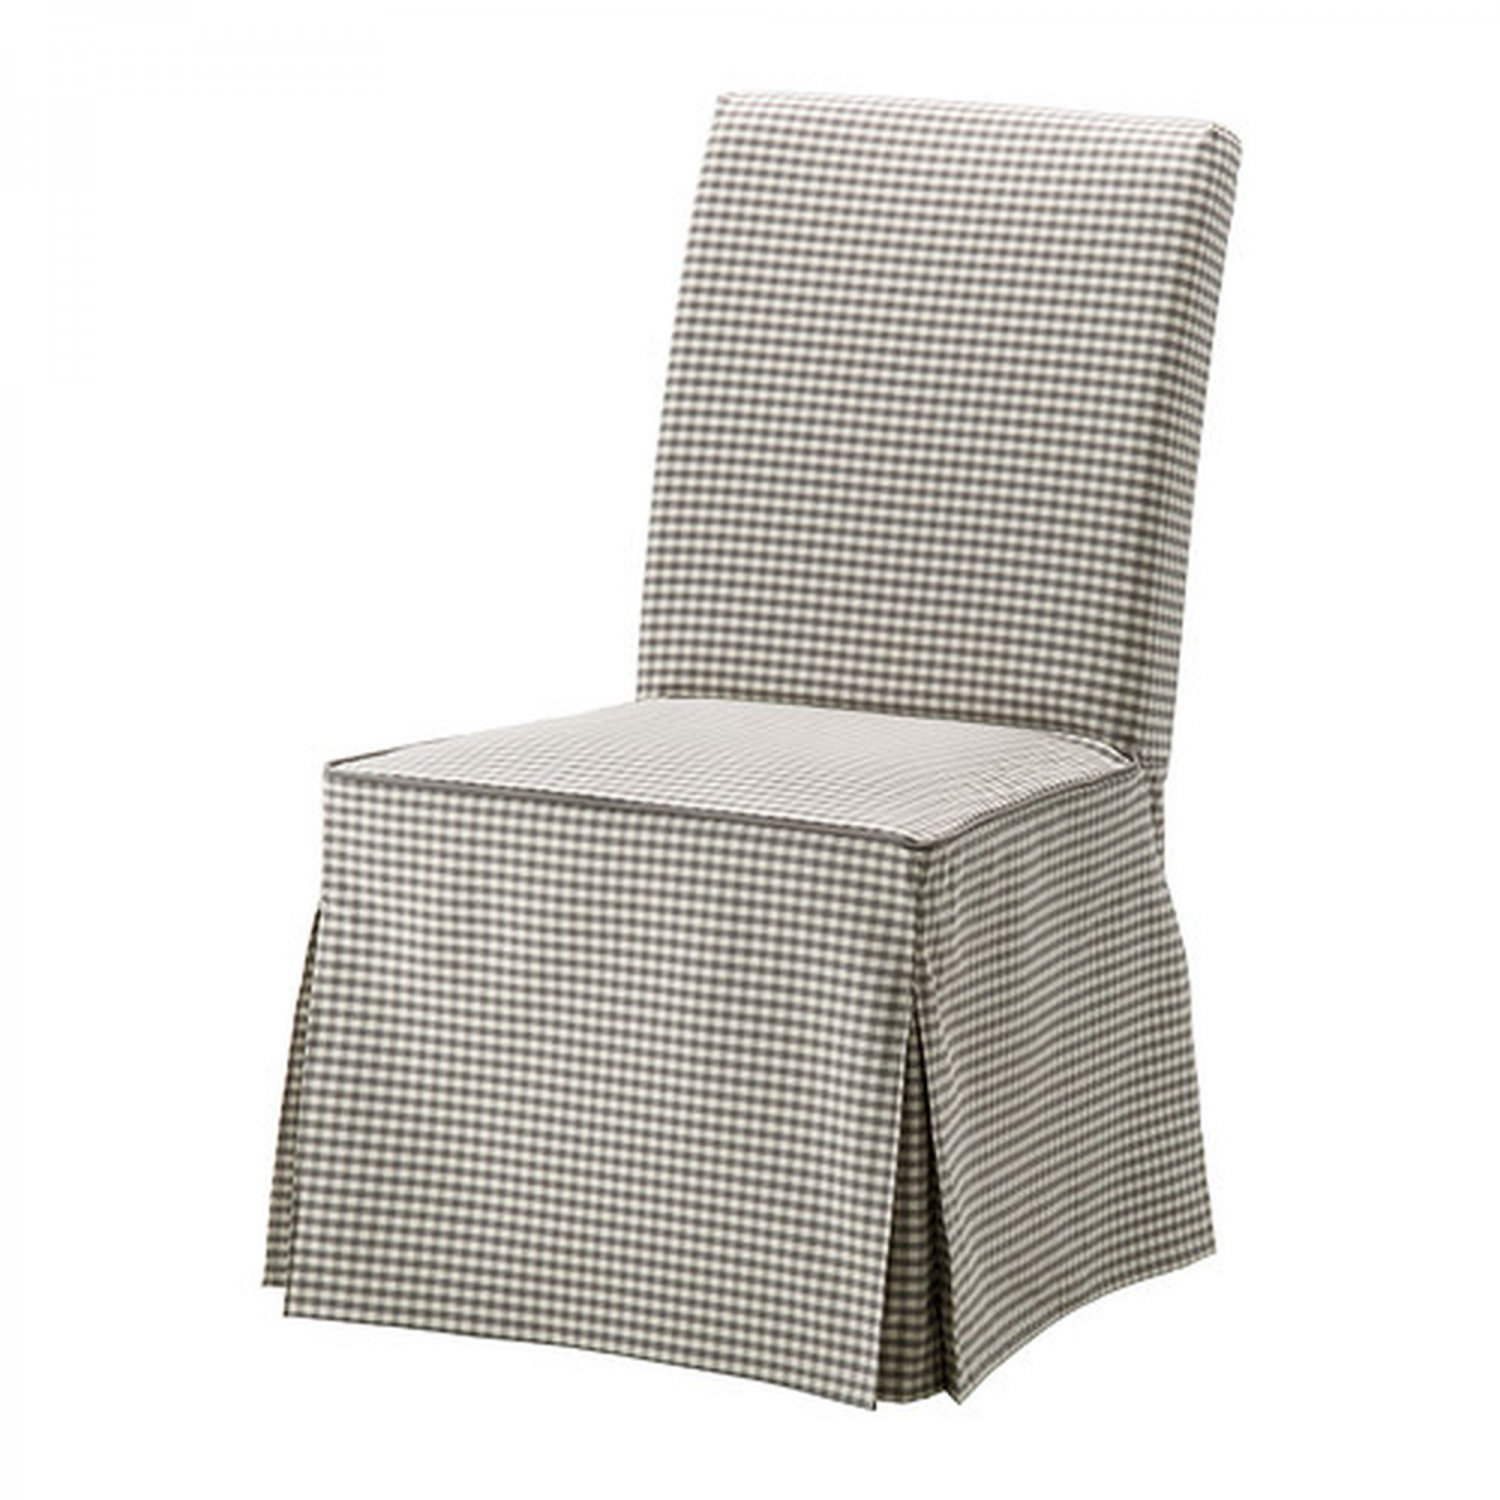 IKEA HENRIKSDAL Chair SLIPCOVER Cover Skirted SAGMYRA Gray  : 5583124c06d2354622b from ecrater.com.au size 1500 x 1500 jpeg 195kB